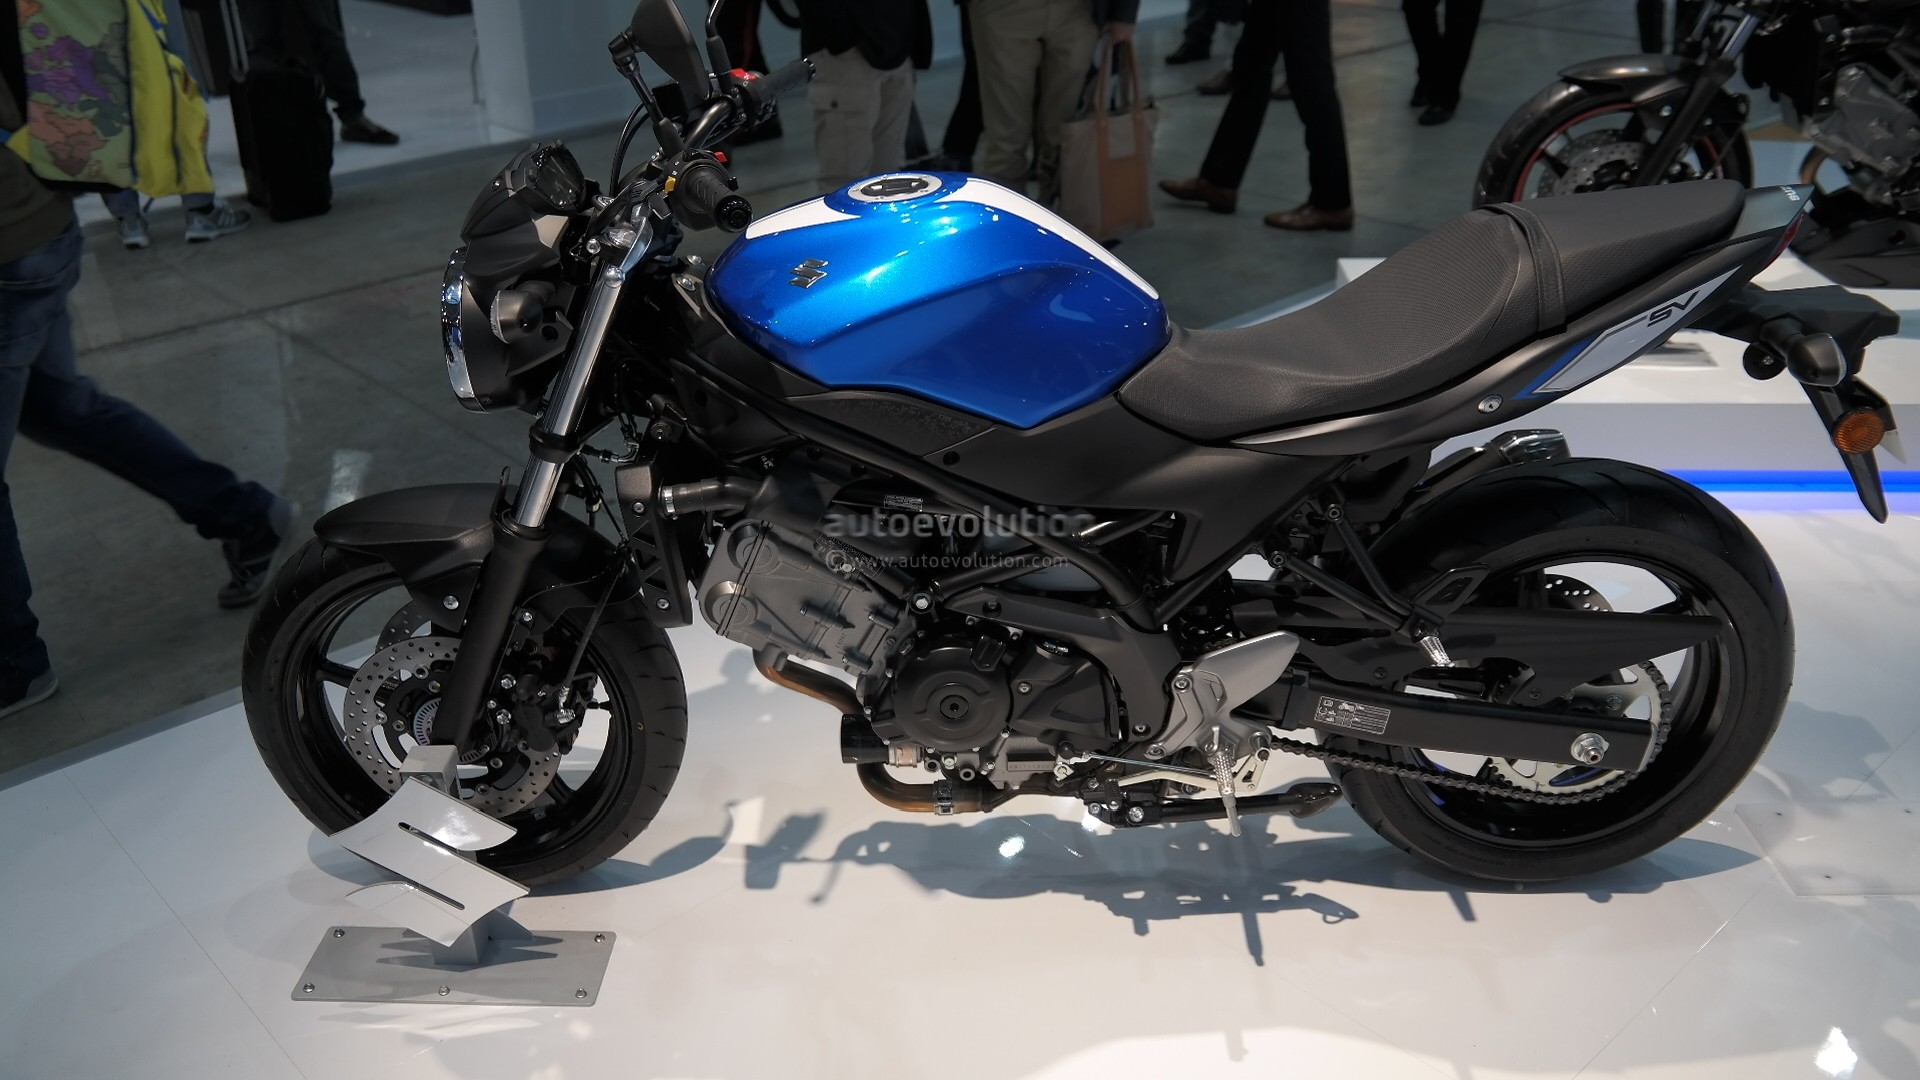 Suzuki Sv650 And Dl650 V Strom Engines Are Euro4 Compliant Wiring Diagram For Racing The New